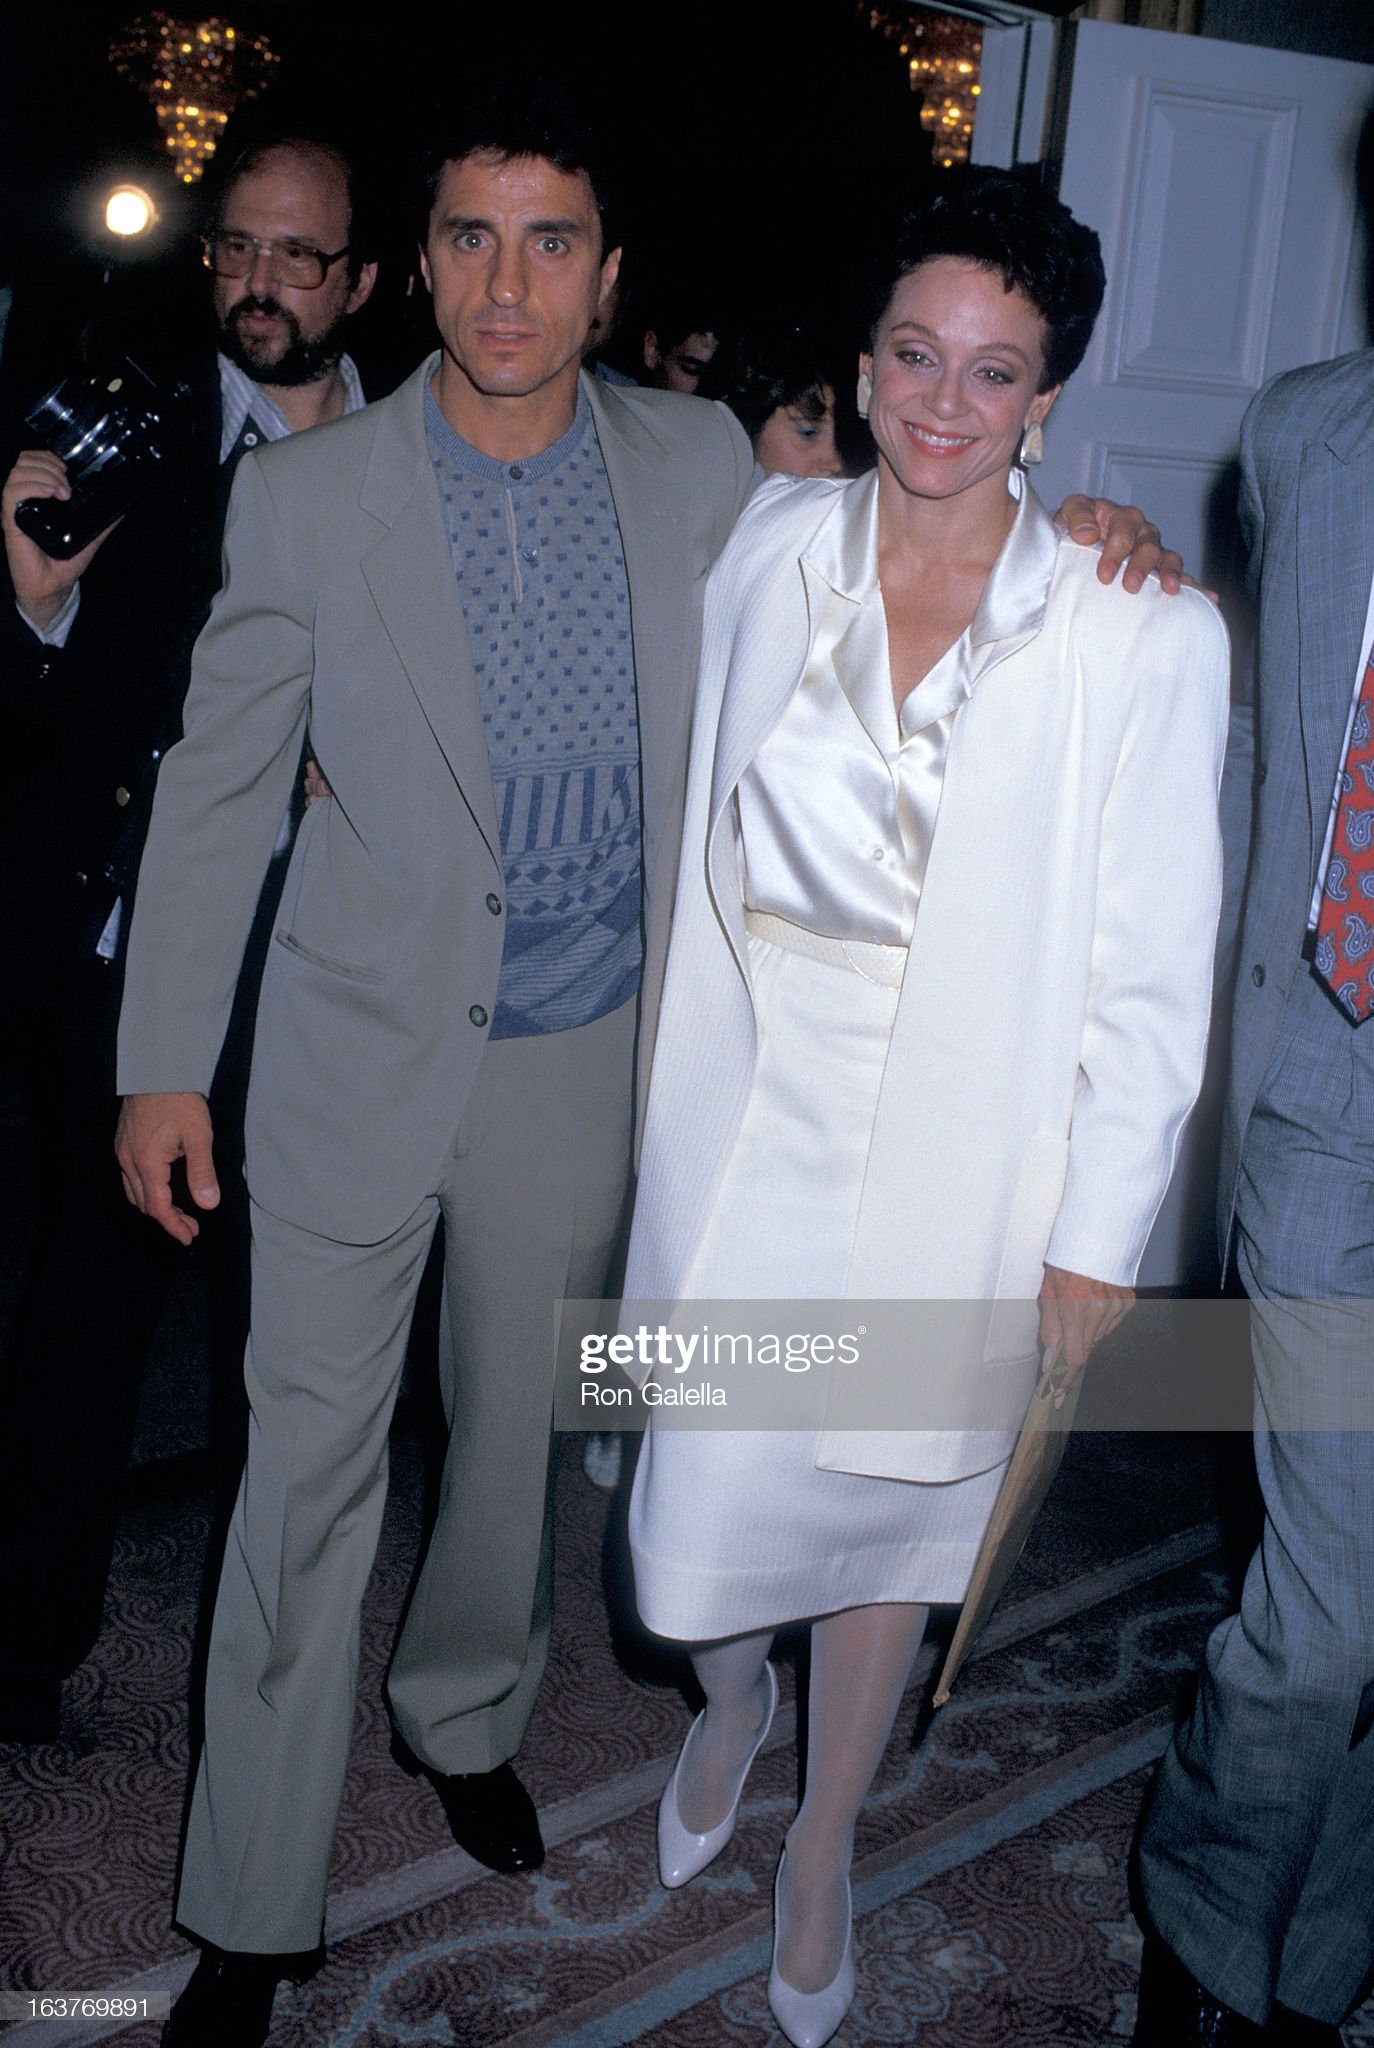 actress-valerie-harper-and-husband-tony-cacciotti-attend-valerie-picture-id163769891